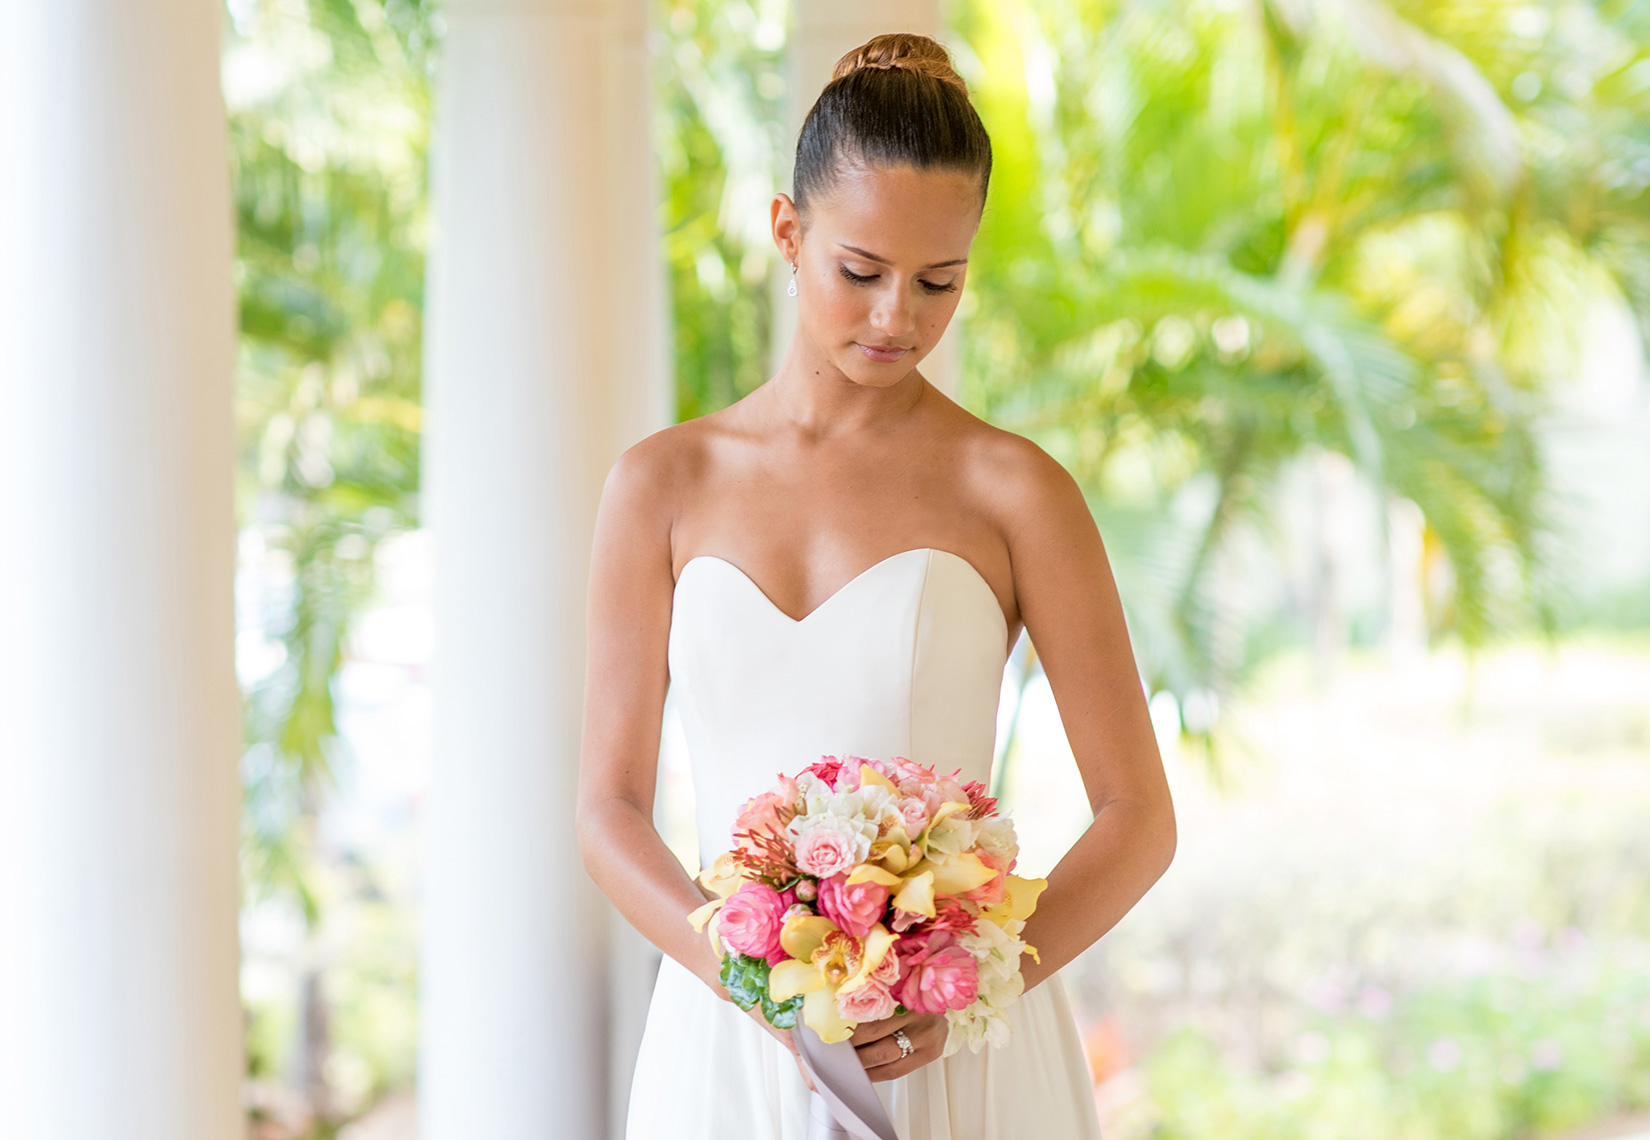 Mikkel Paige Photography photos of a bride in St. Lucia at The Landings.